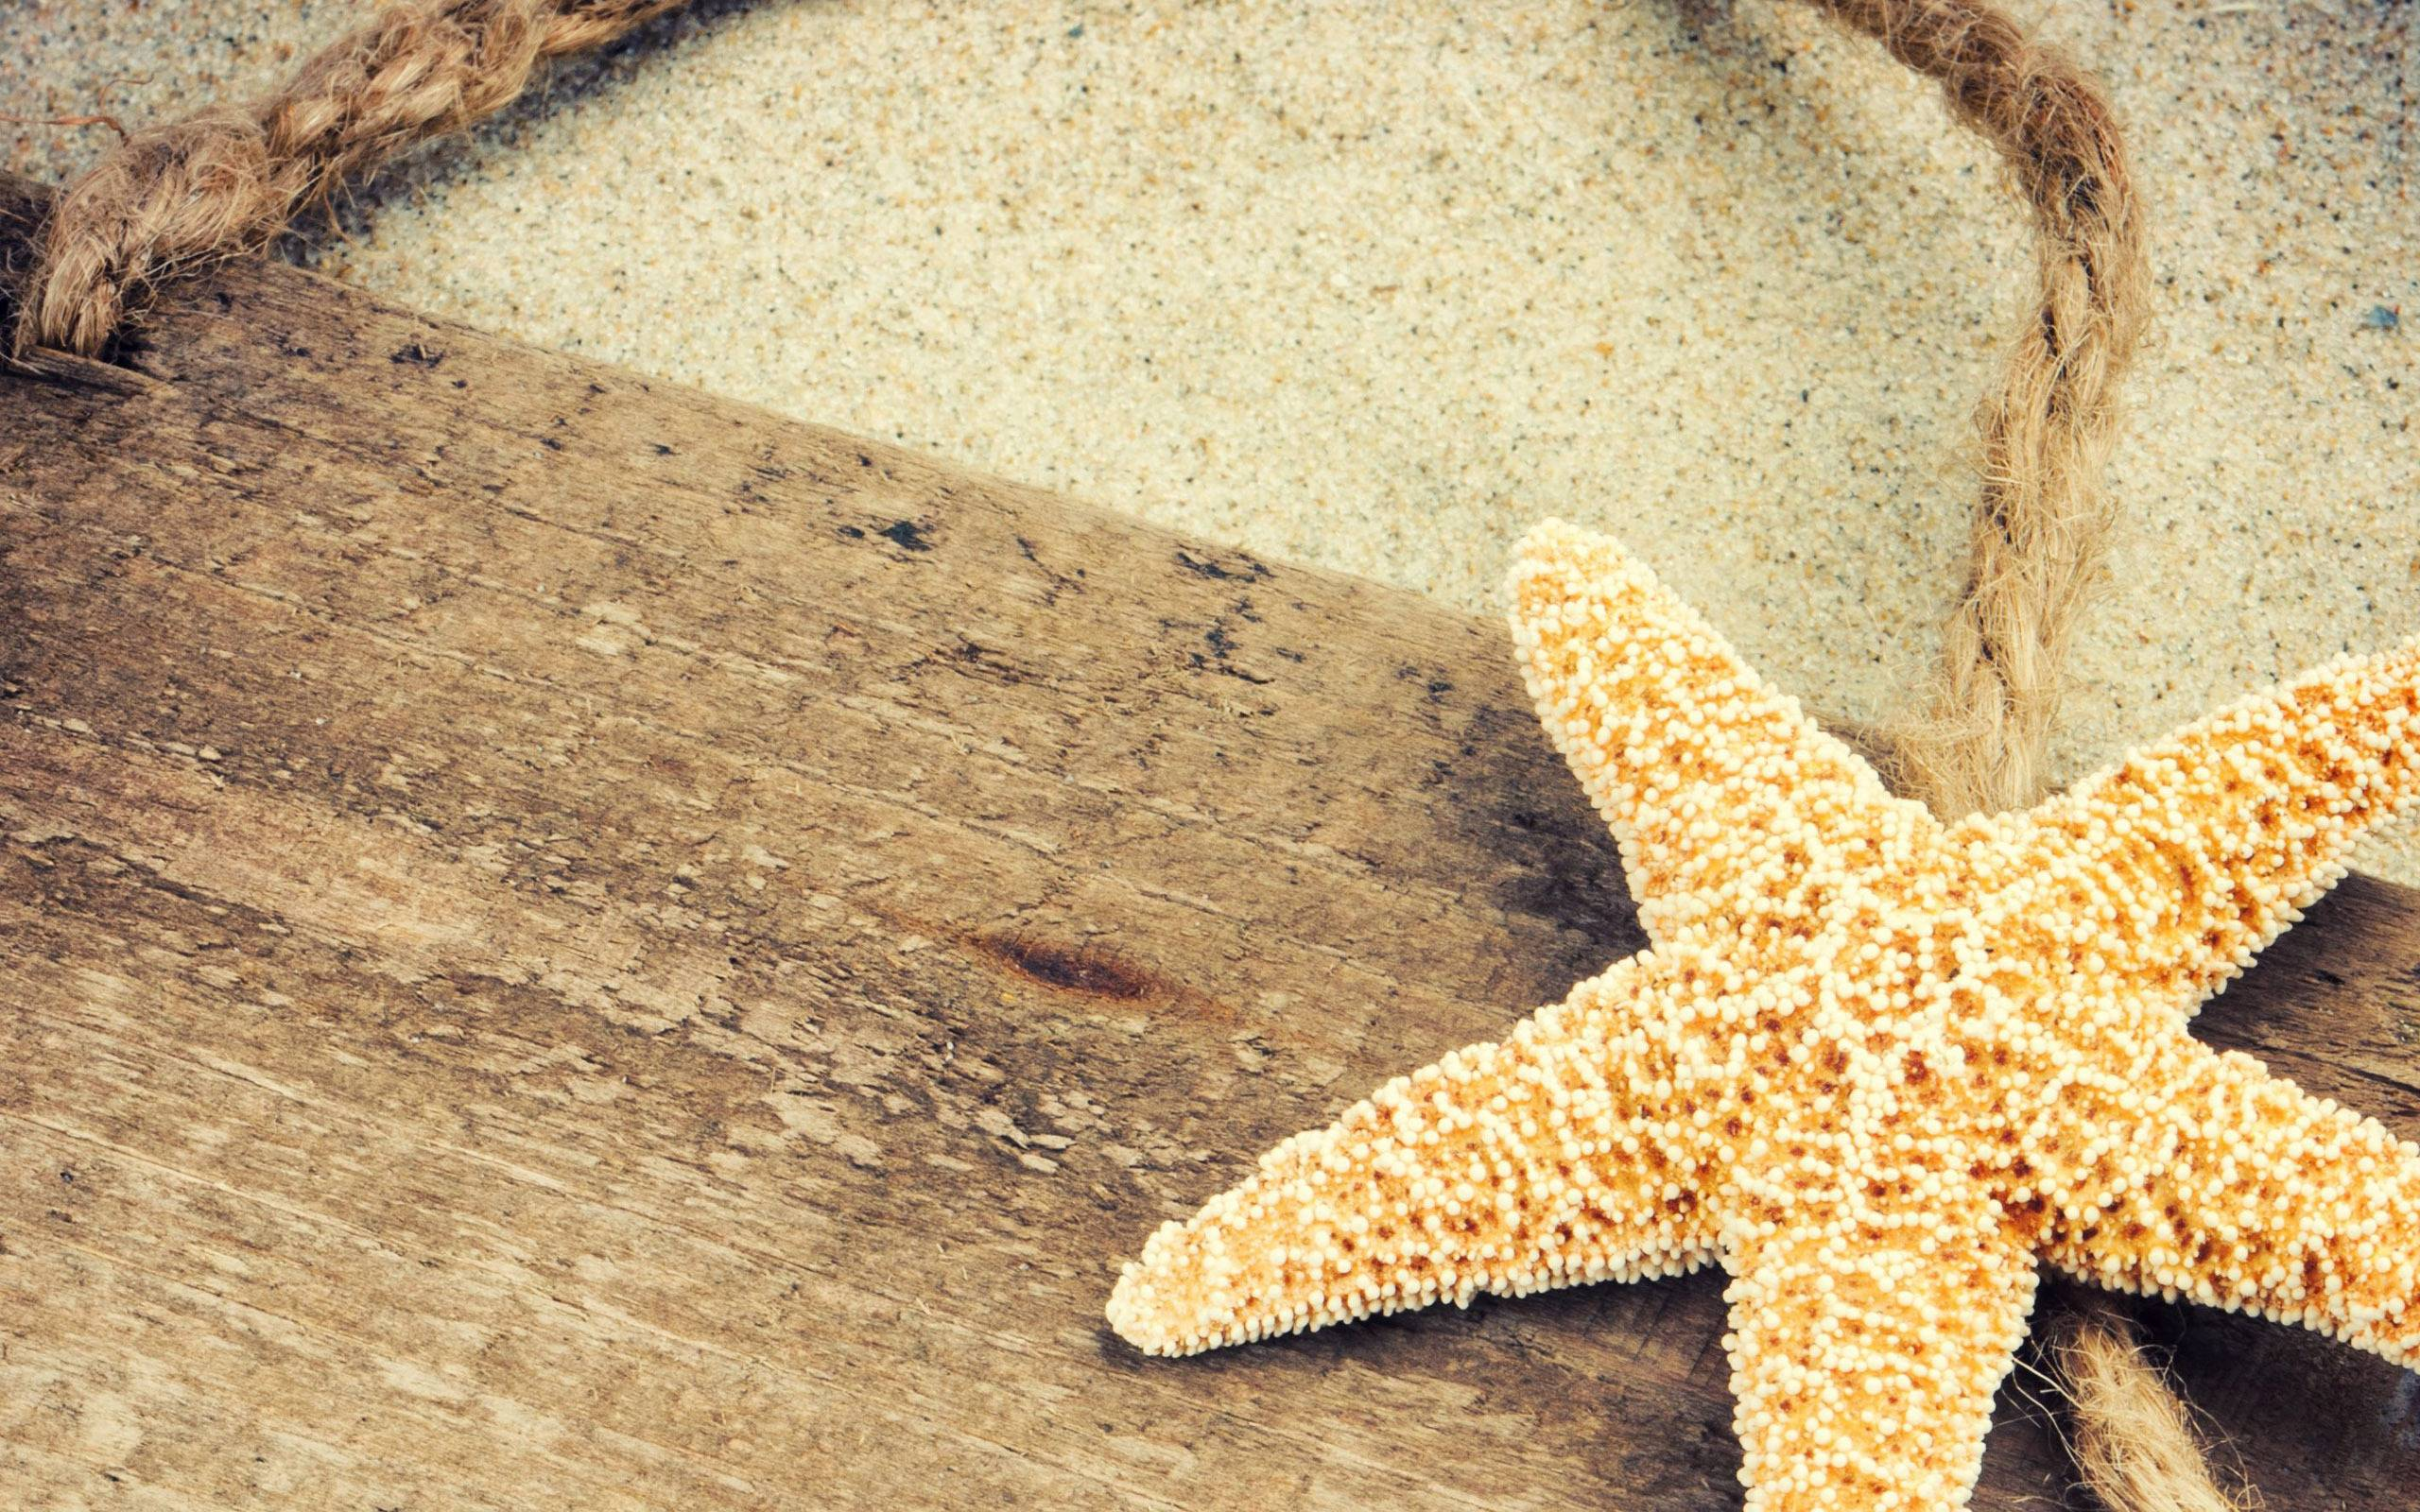 Starfish Backgrounds Wallpaper Cave HD Wallpapers Download Free Images Wallpaper [1000image.com]